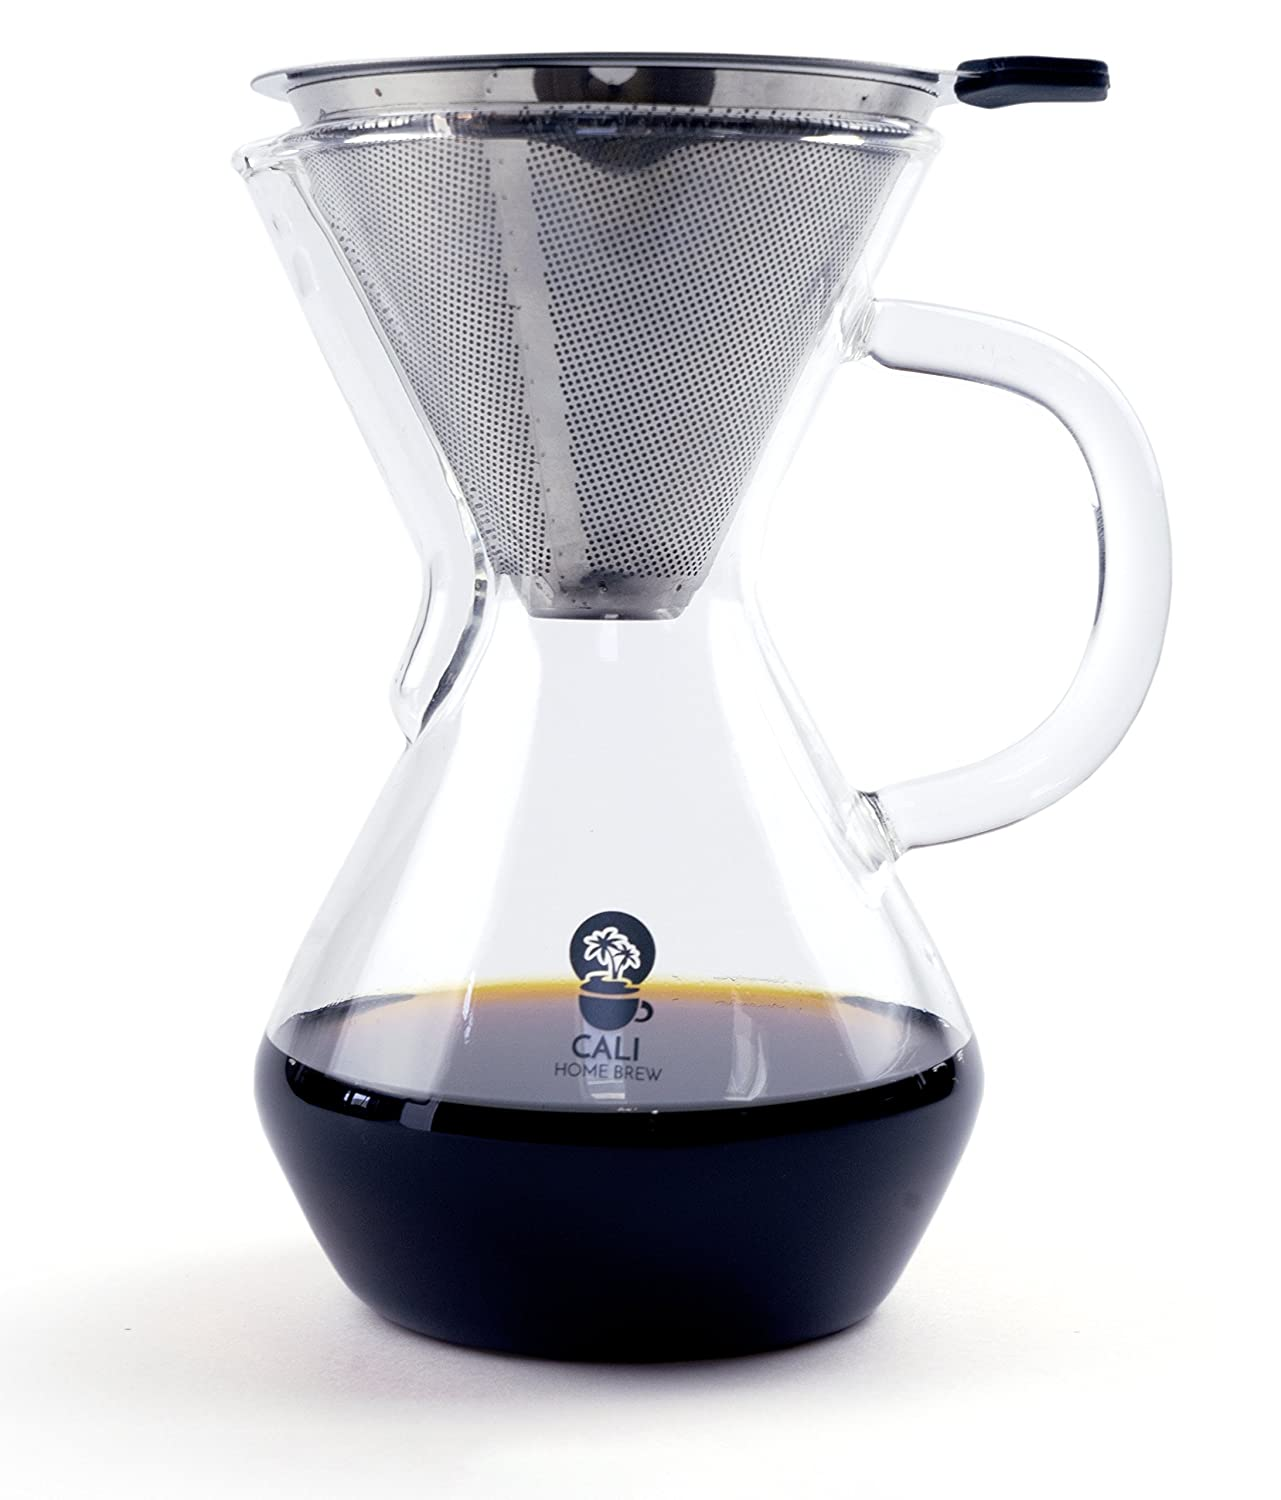 Cali Home Brew Pour Over Coffee Maker | 3 Cup/17oz Brewer | BPA Free Borosilicate Glass Carafe | Dual Layer Reusable Stainless Steel Filter | Eco Friendly | Easy to Clean Coffee Dripper | Free Ebook POC-500-01